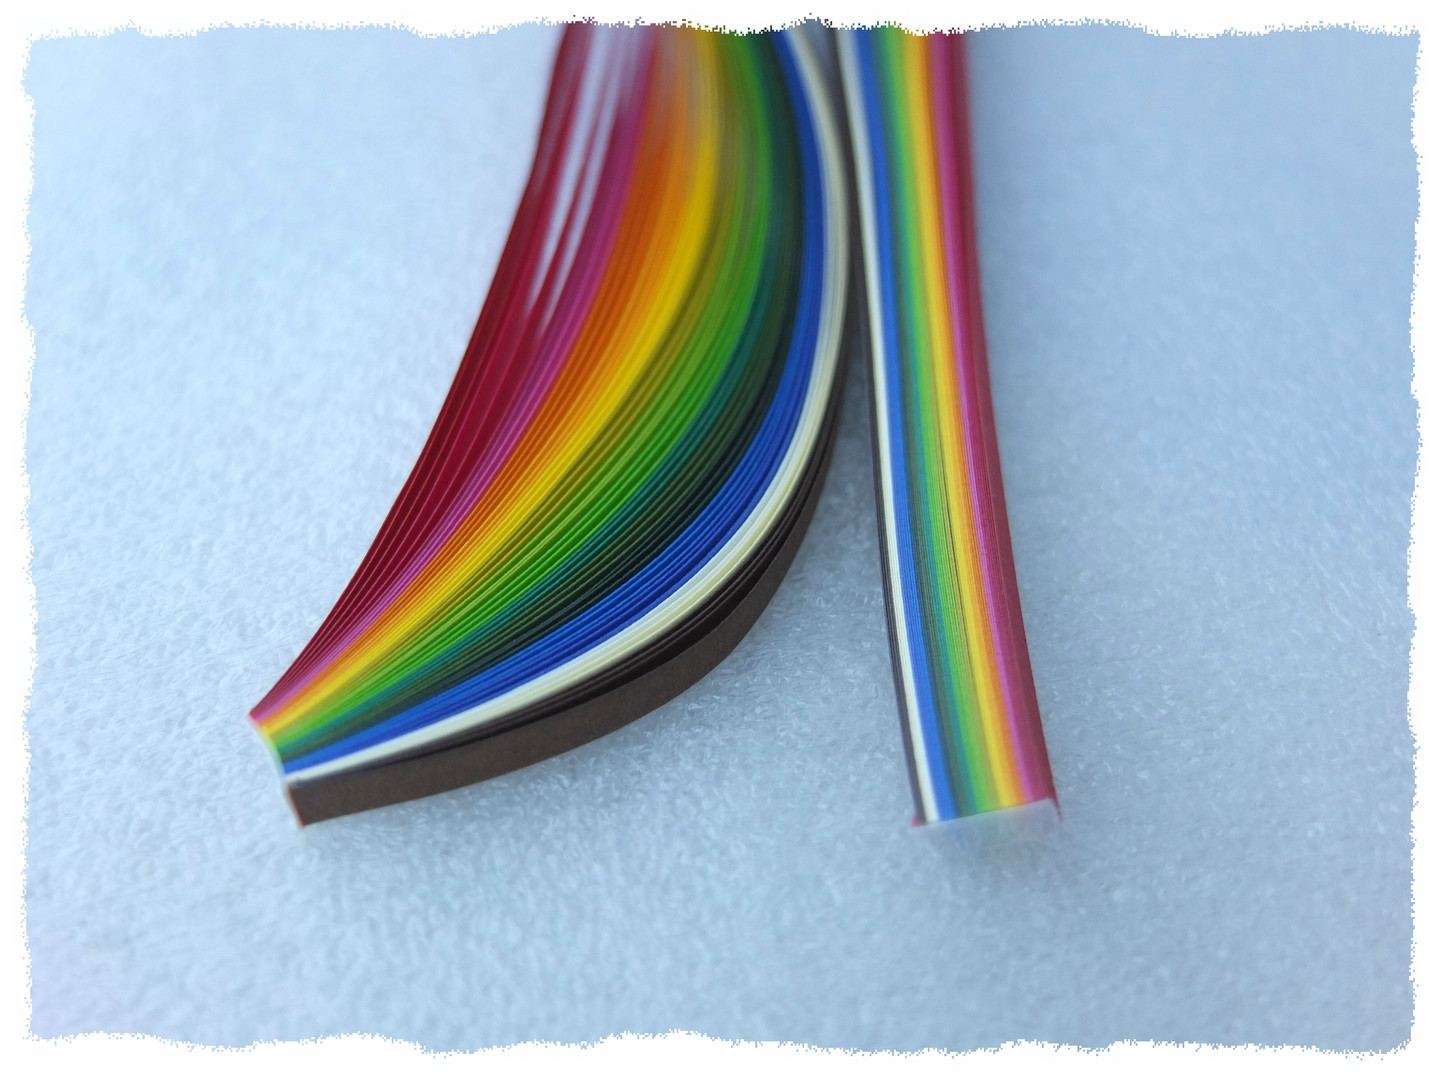 Rainbow Spectrum Quilling Papers